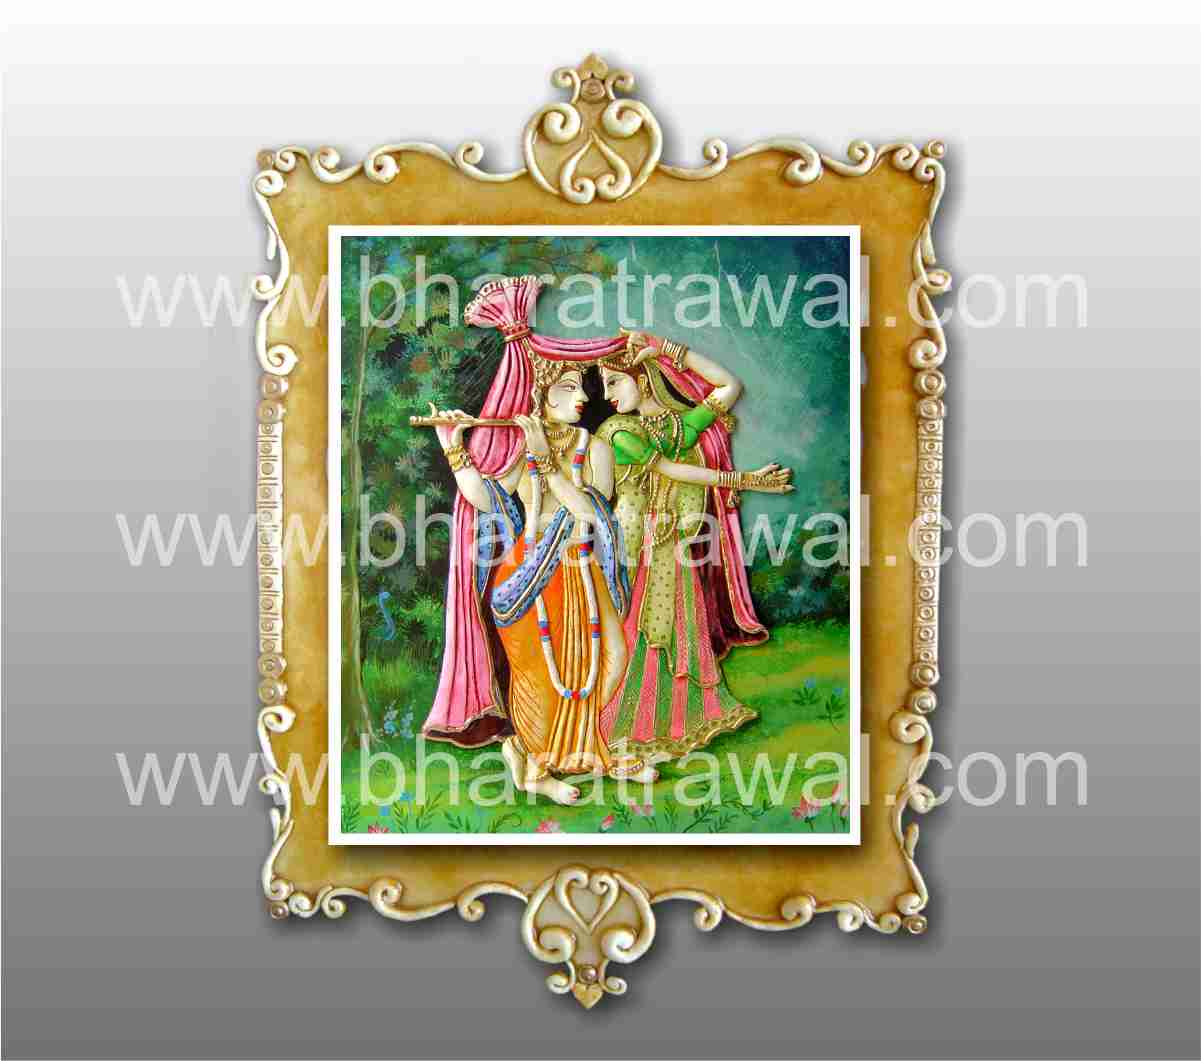 Mural art by muralguru bharat rawal ceramic murals a for Ceramic mural designs